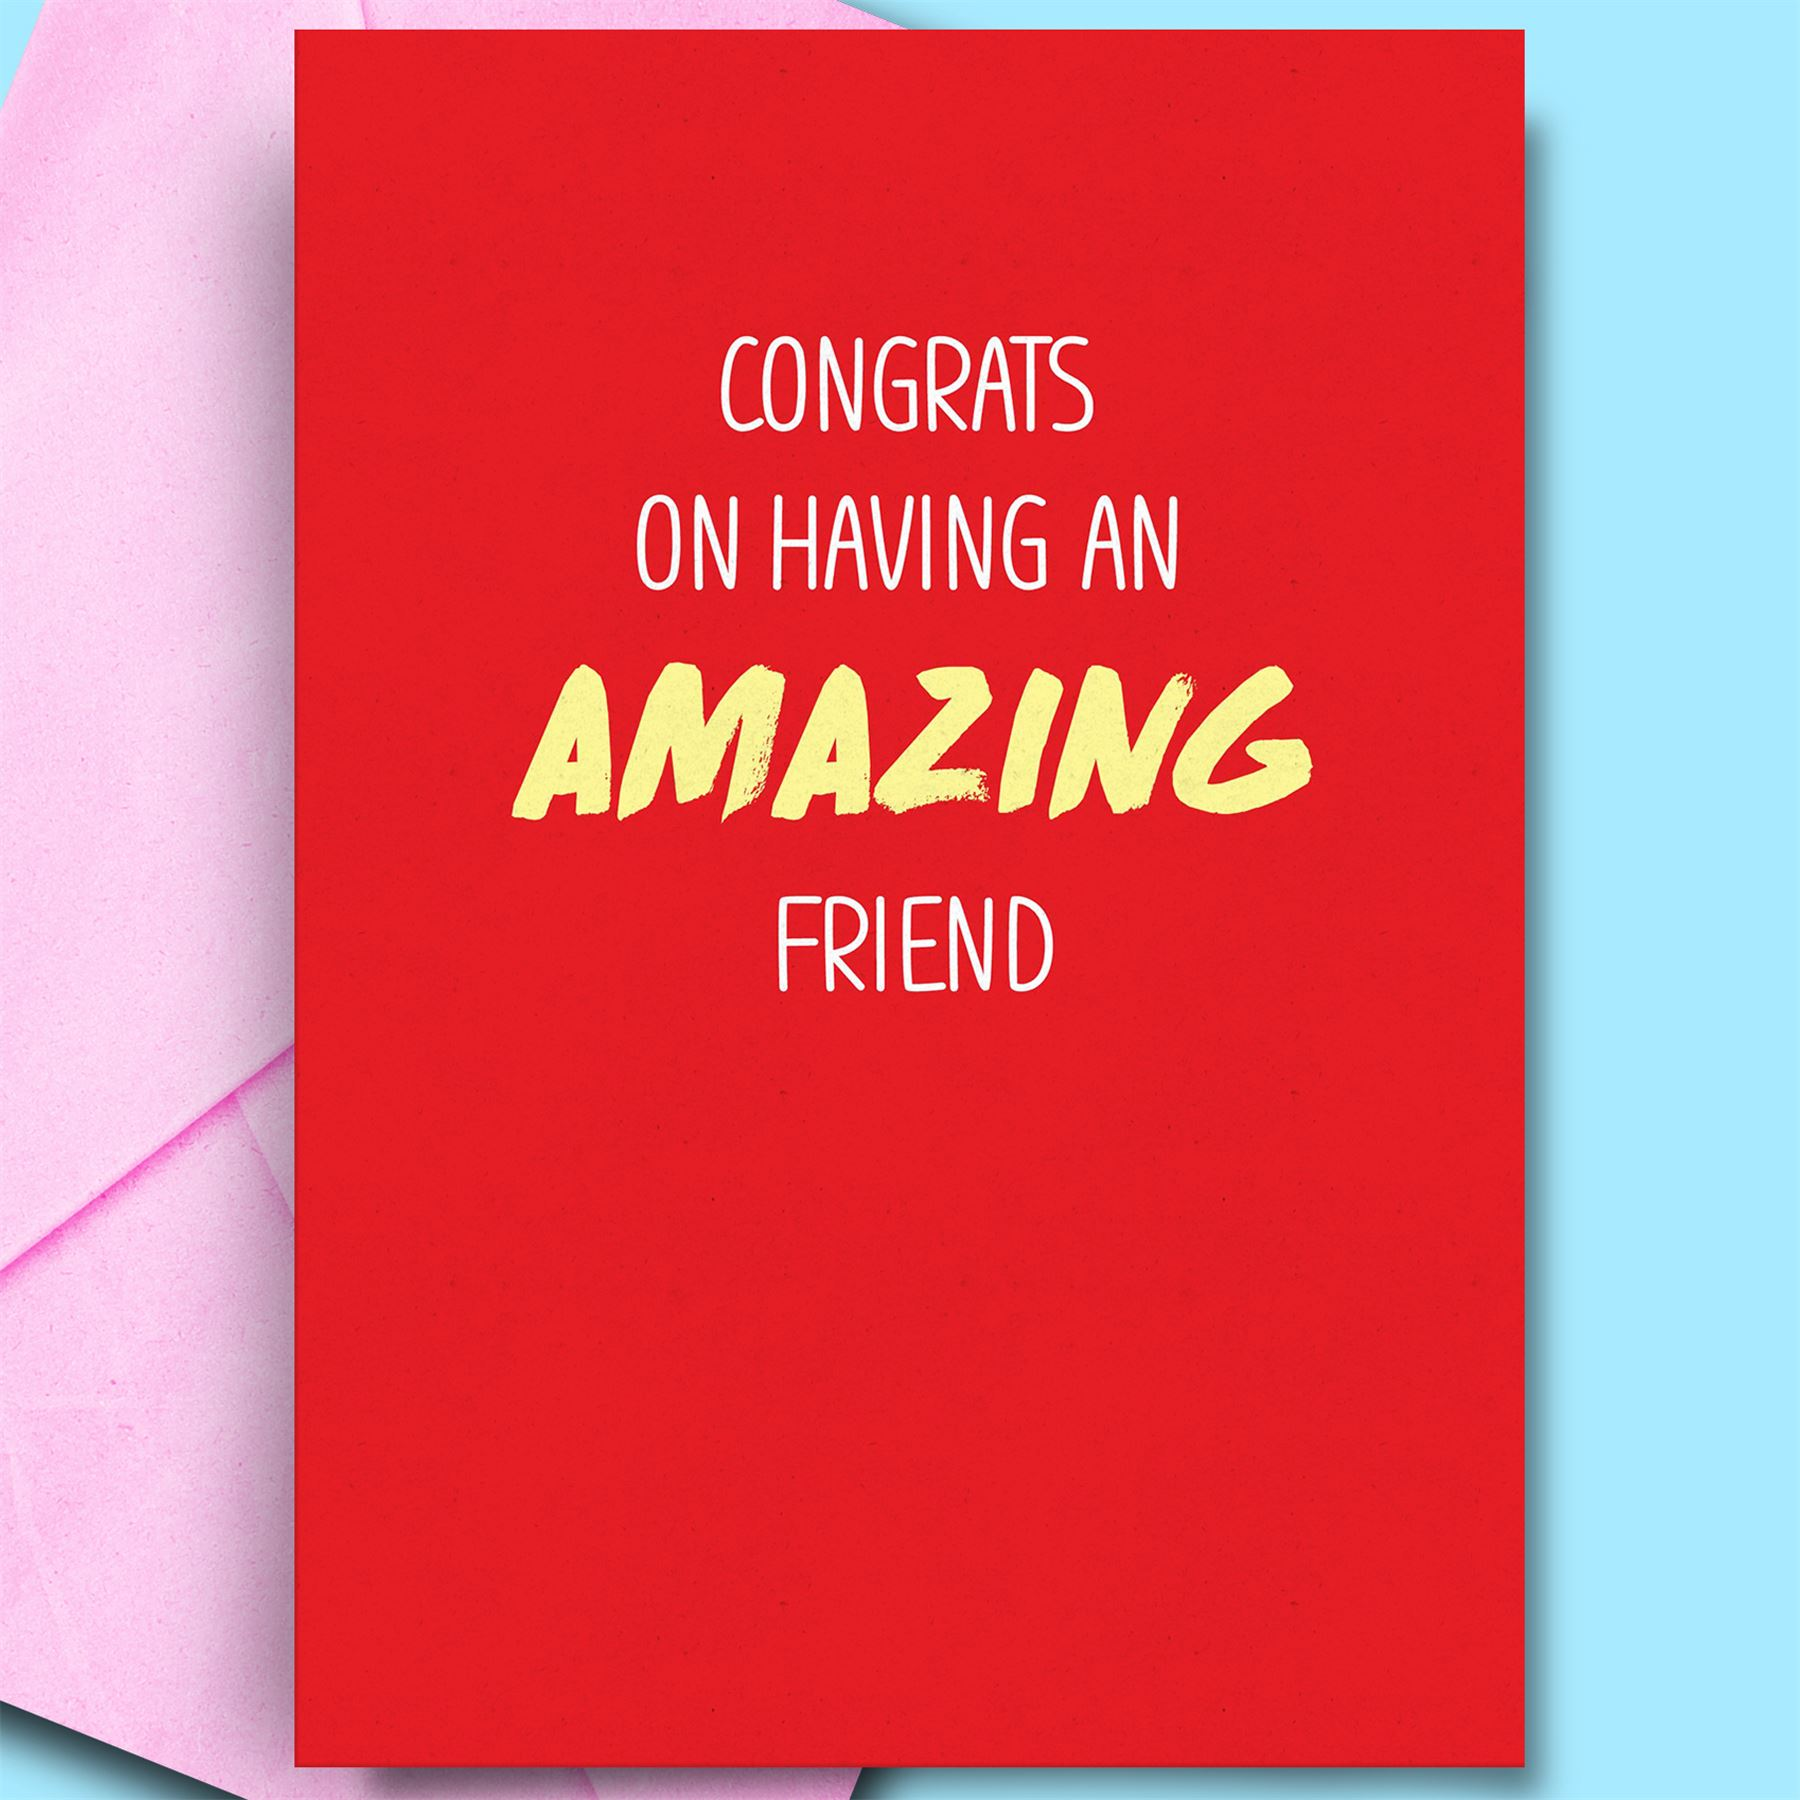 Details About An Amazing Friend Funny Birthday Card For Mate Best BFF Cheeky Pun